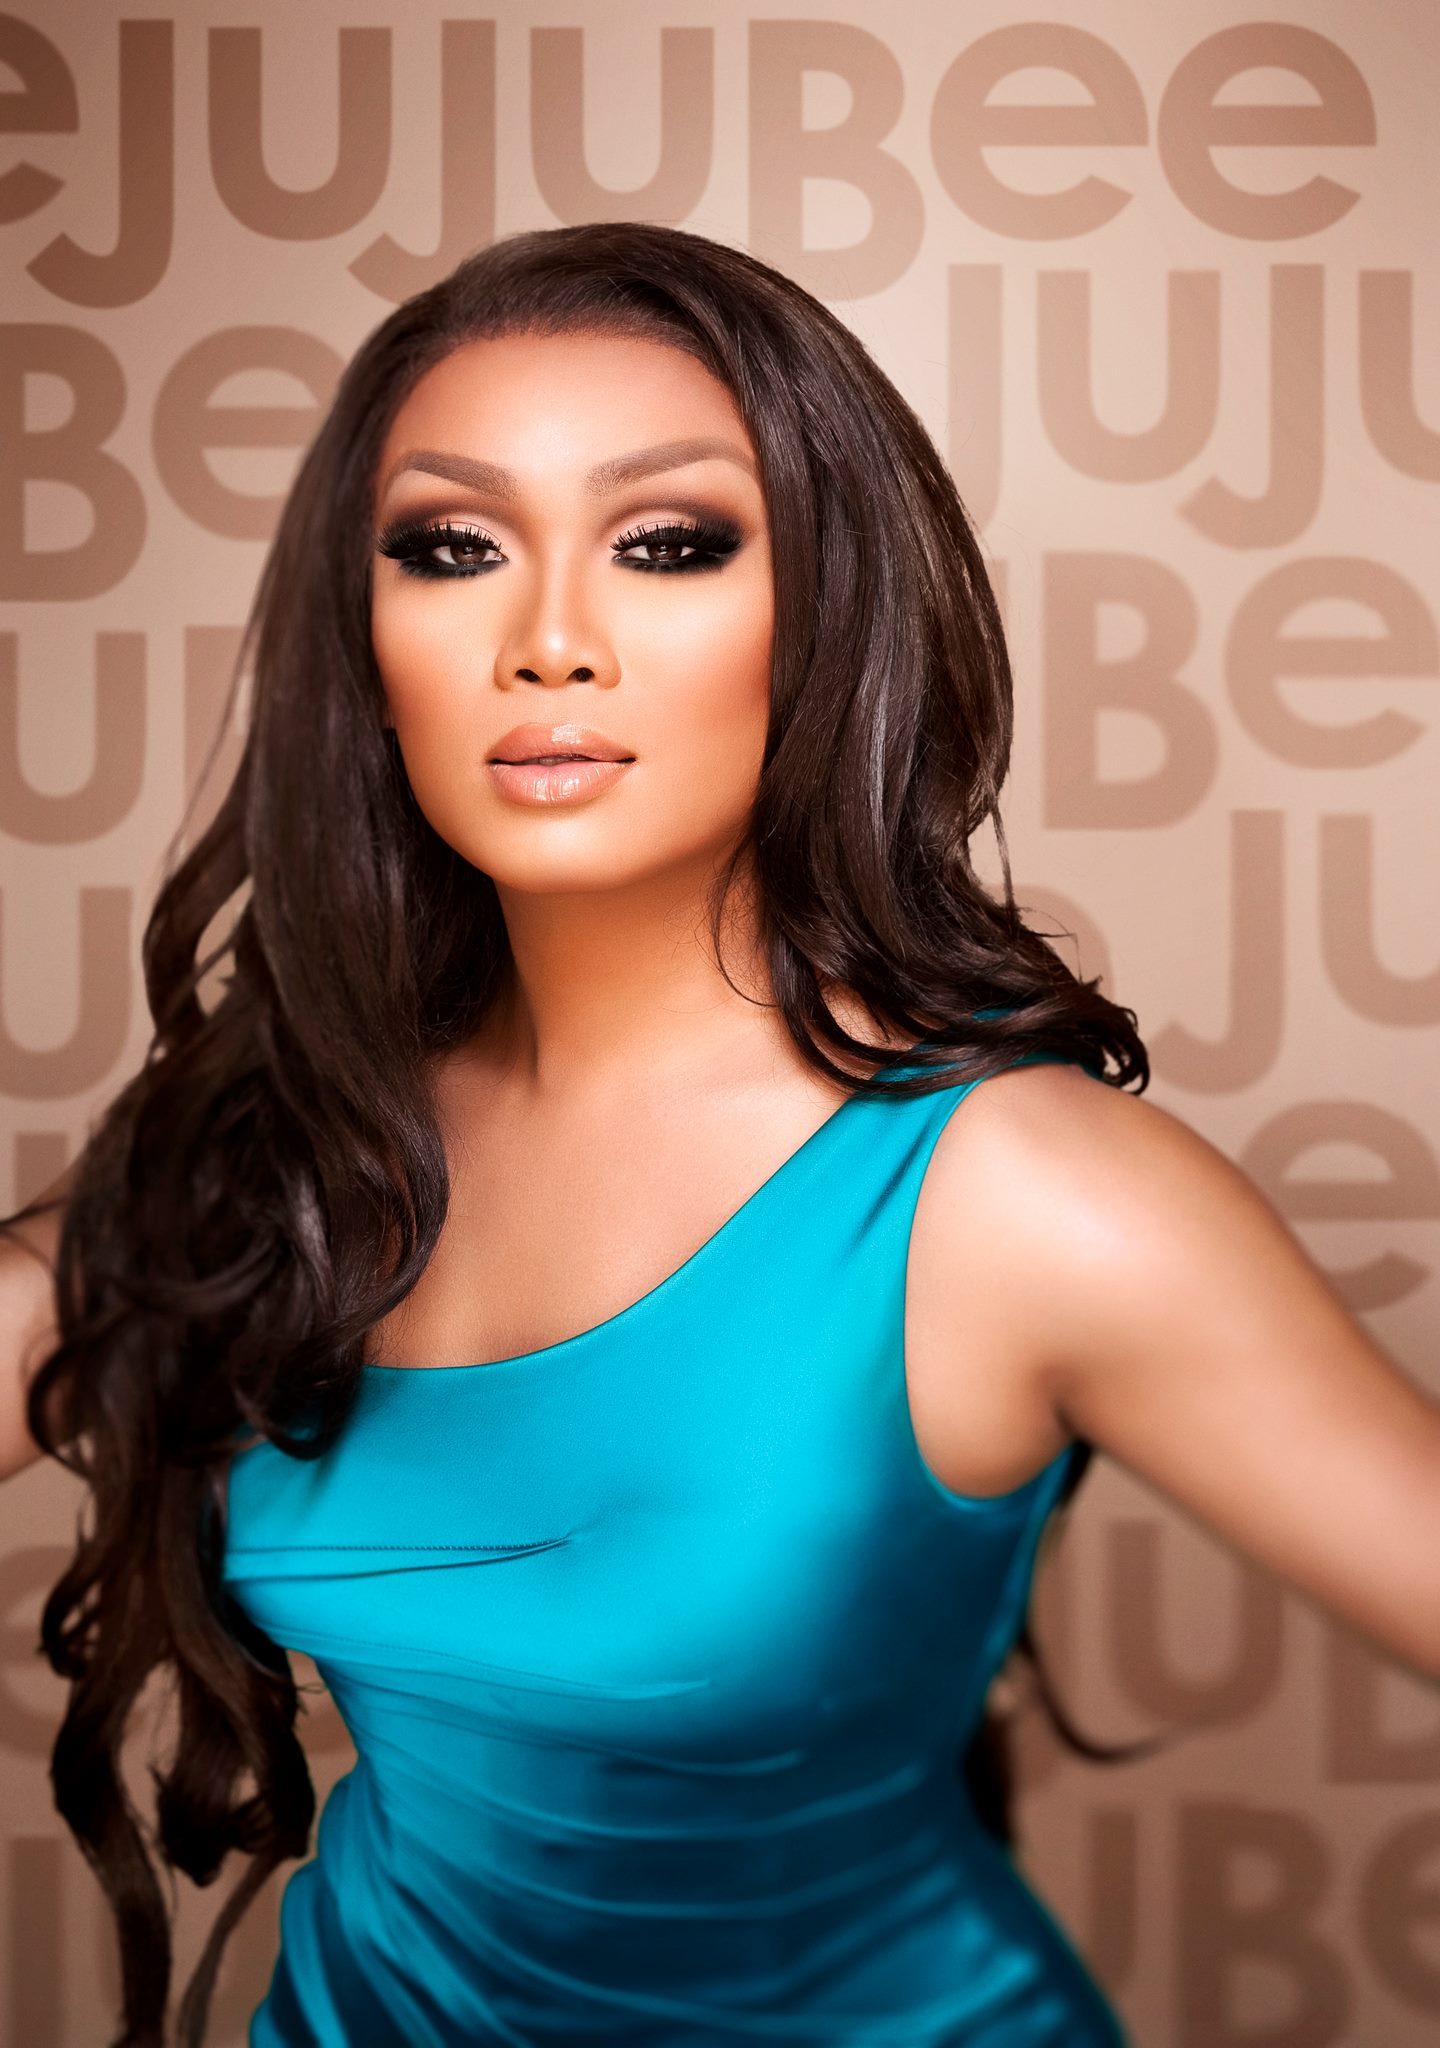 Jujubee - Photo by Mathu Andersen